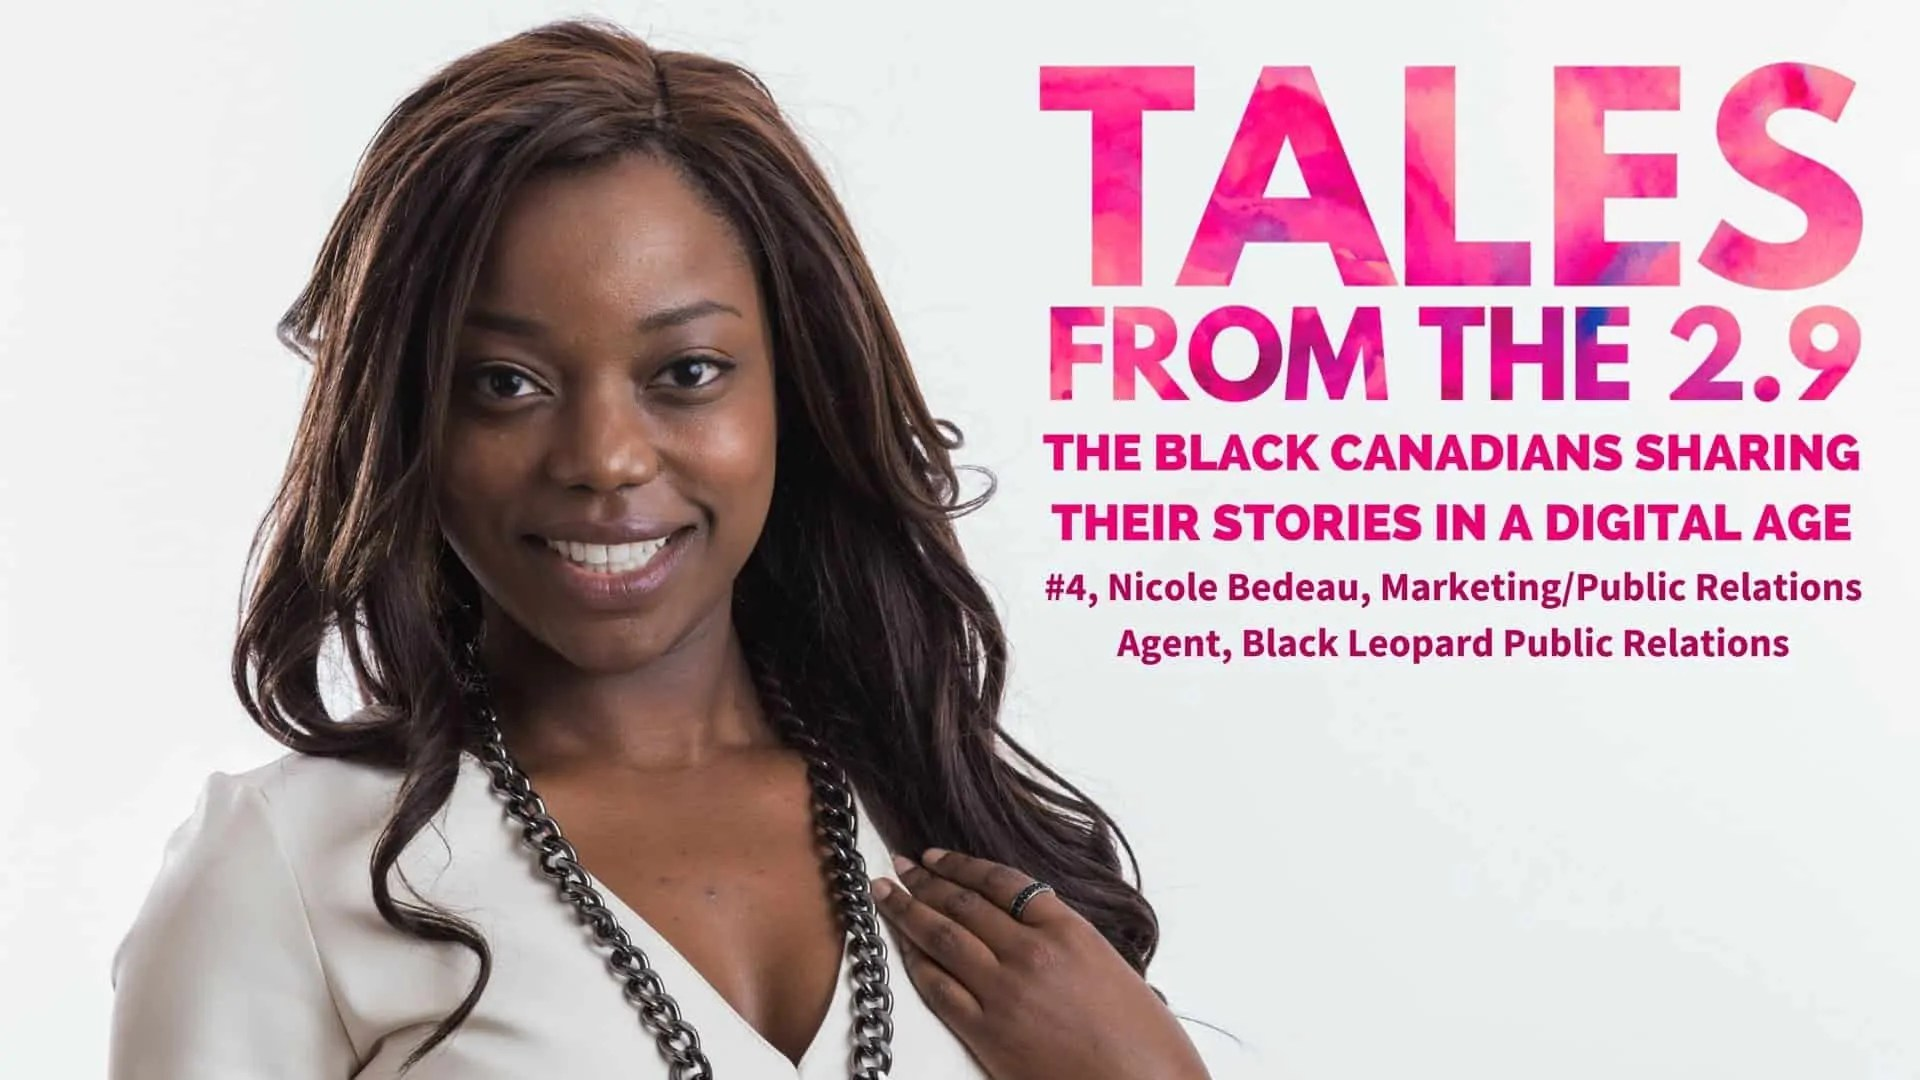 Tales from the 2.9 — The Black Canadians Sharing their Stories in a Digital Age — Vol. 2 #4, Nicole Bedeau, MarketingPublic Relations Agent, Black Leopard Public Relations (Featured Image)